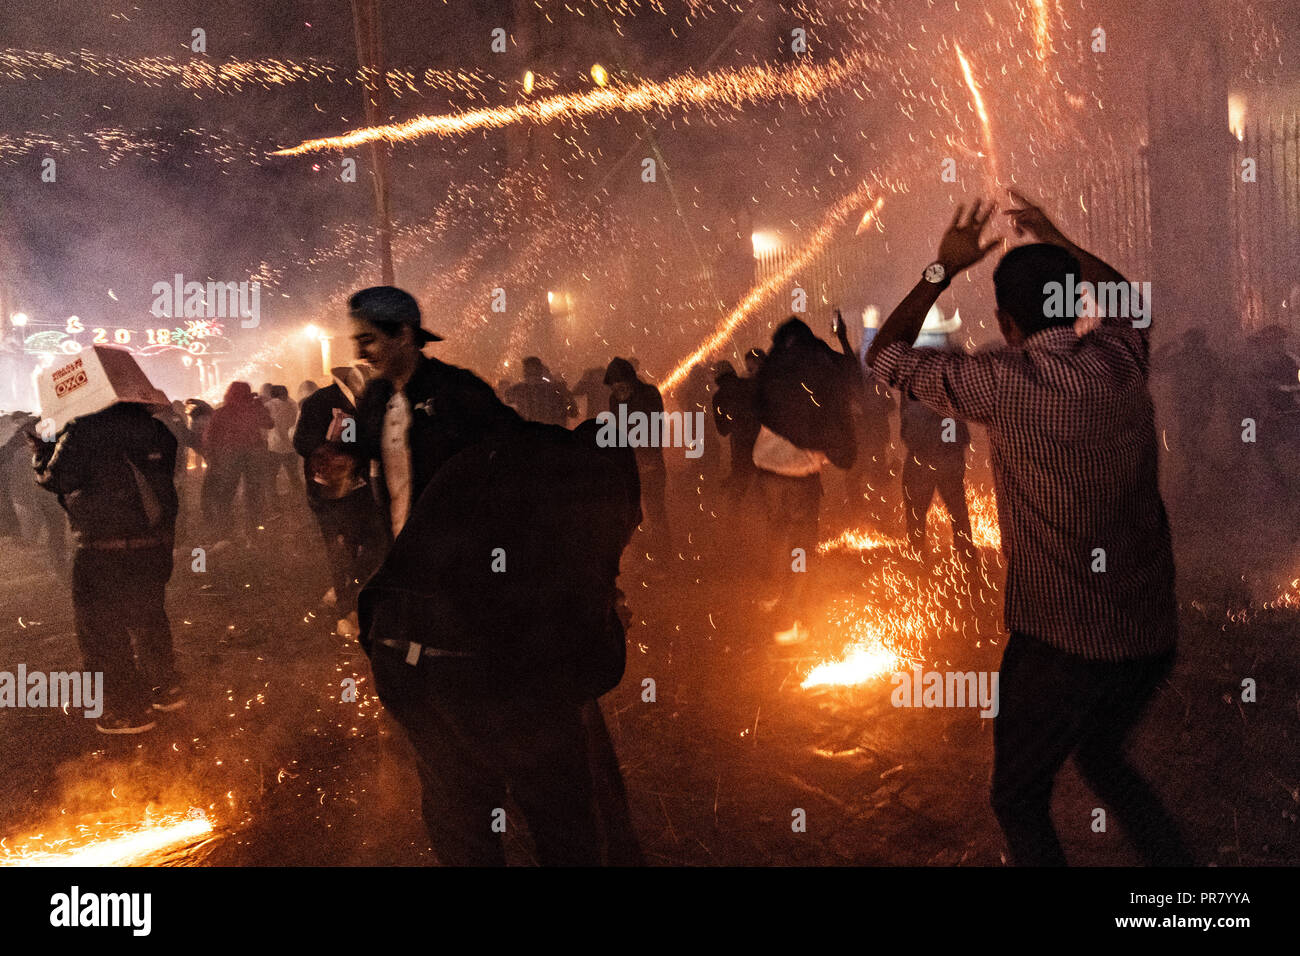 San Miguel de Allende, Mexico. 29th Sept 2018. Mexicans run for cover as they are barraged by pyrotechnic sky rockets during the Alborada festival September 29, 2018 in San Miguel de Allende, Mexico. The unusual festival celebrates the cities patron saint with a two hour-long firework battle at 4am representing the struggle between Saint Michael and Lucifer. Credit: Planetpix/Alamy Live News - Stock Image